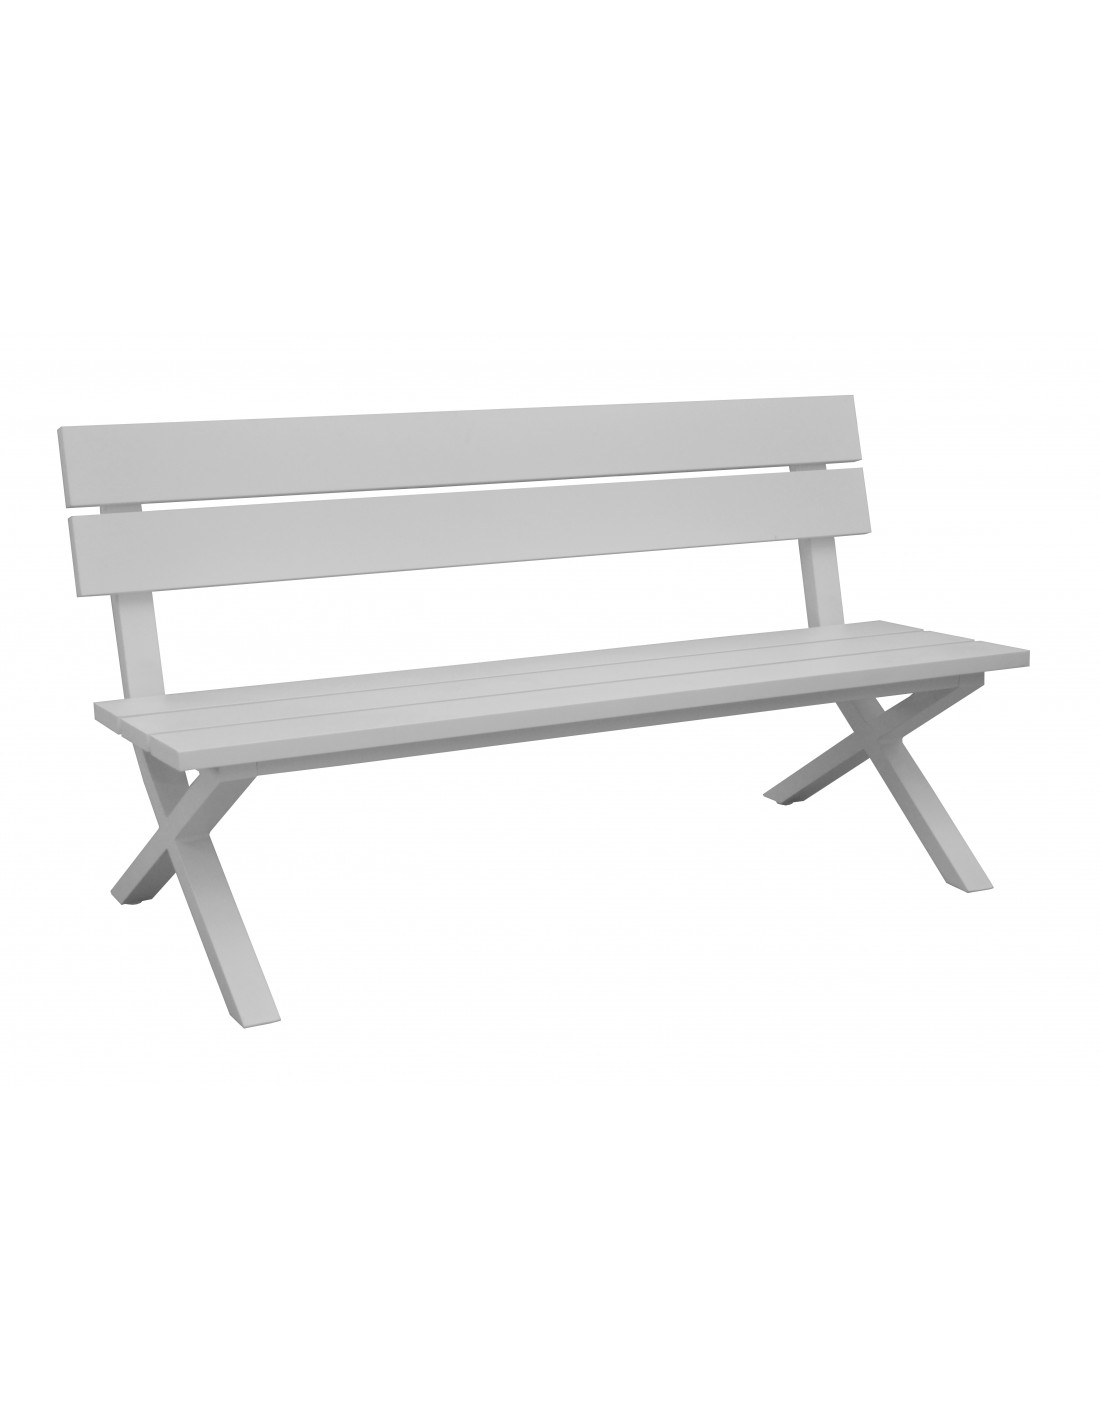 banc de jardin crossway avec dossier en aluminium grey ou blanc oc o. Black Bedroom Furniture Sets. Home Design Ideas